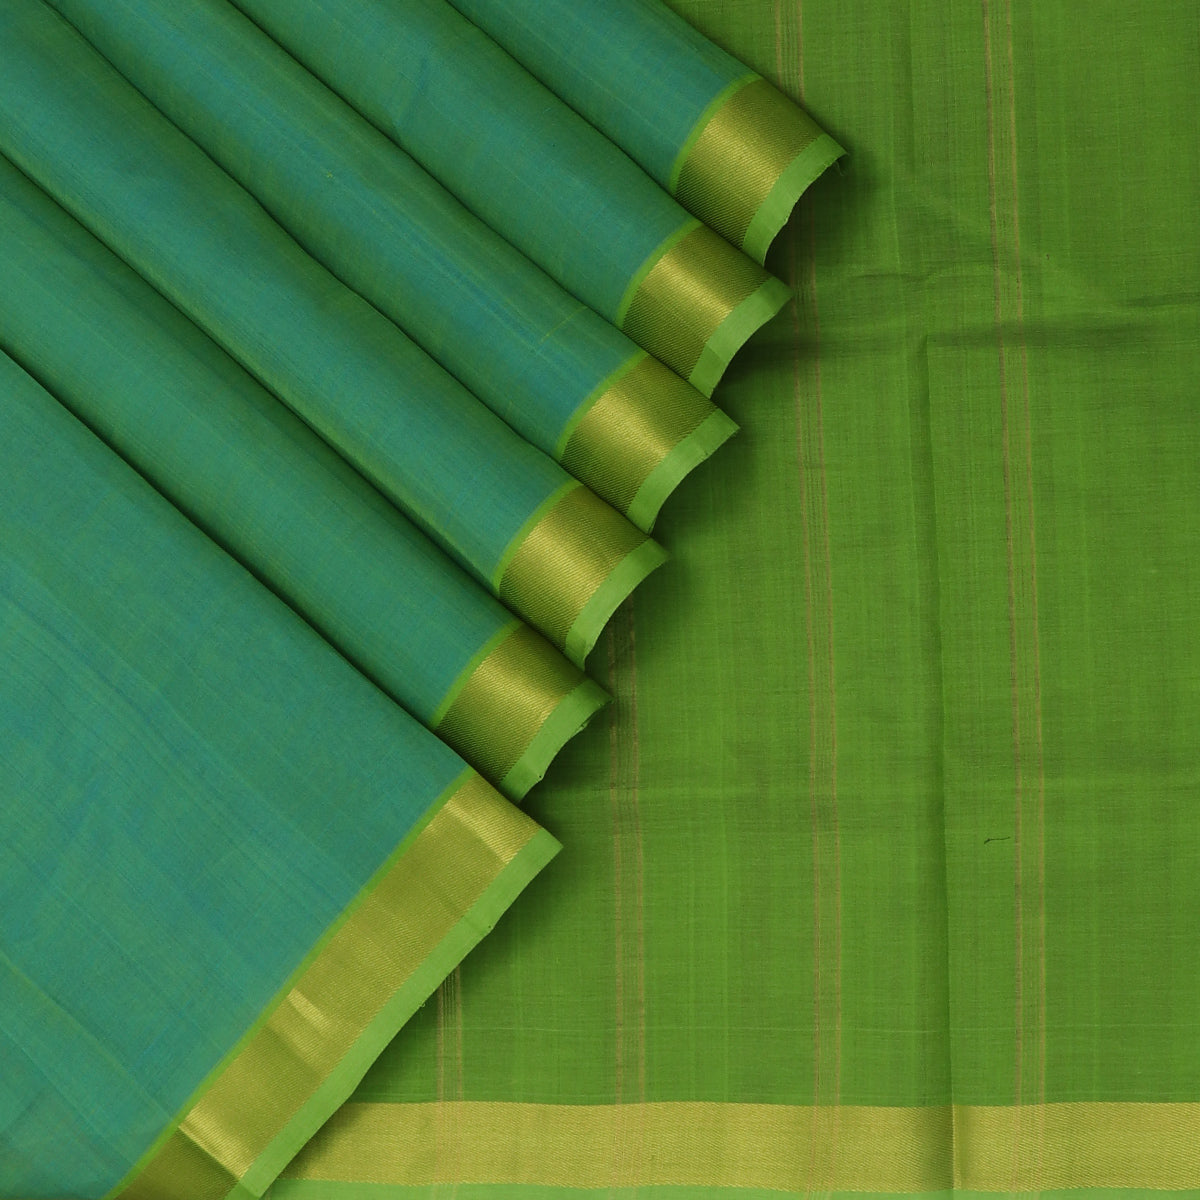 Silk Cotton Saree-Dual shade of Sky blue and light Green with Zari border